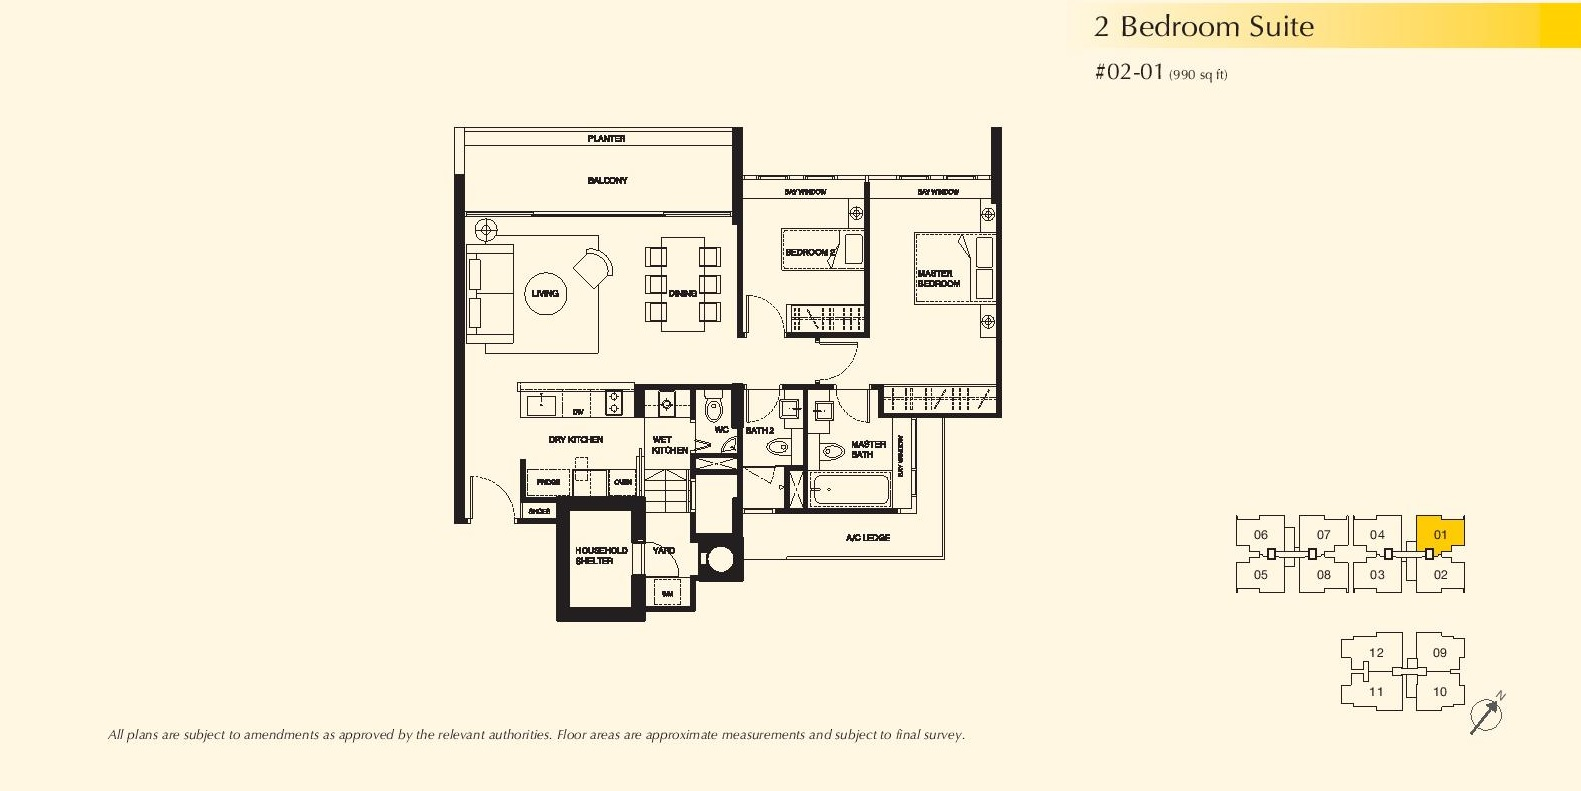 2 Bedroom Suite Dukes Residences